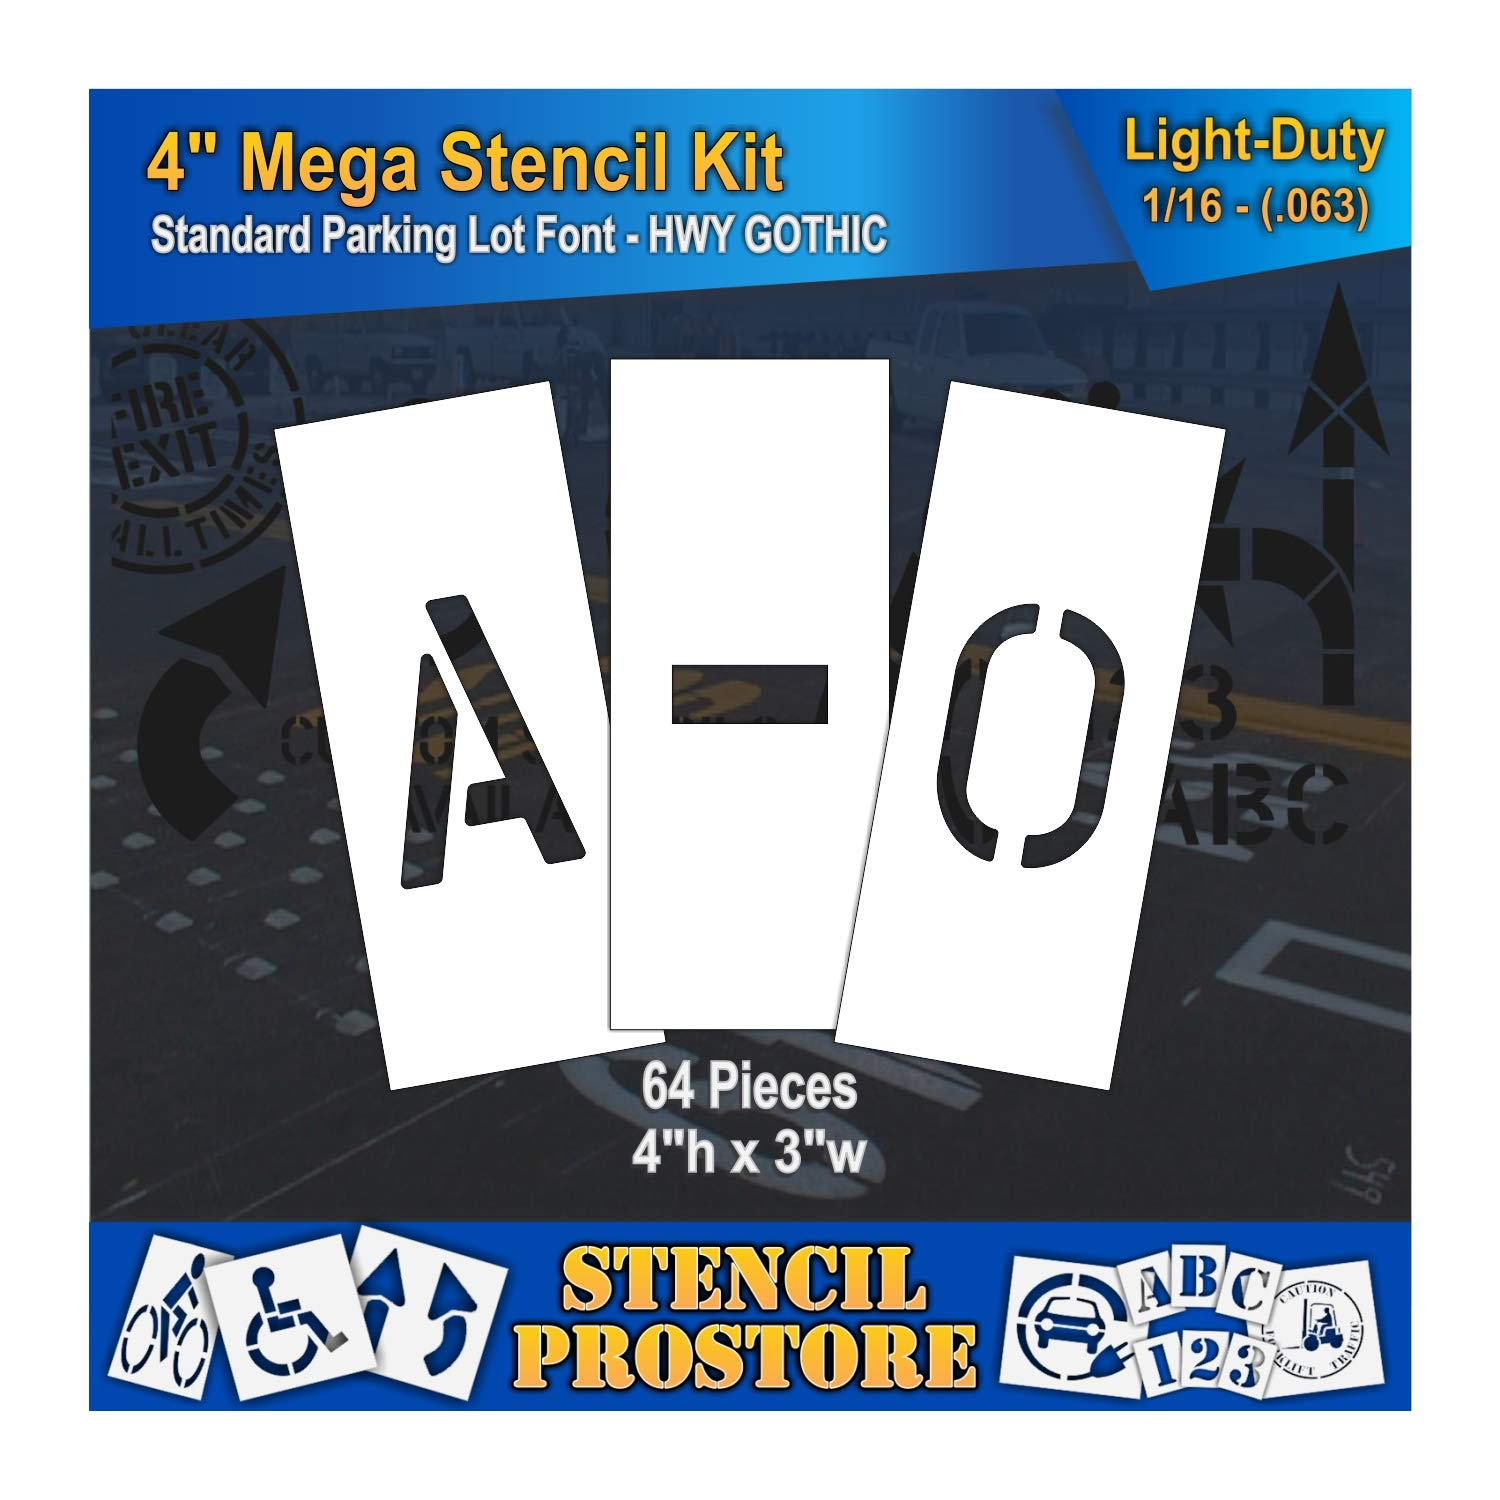 Curb & Median Stencils - 4 inch MEGA Alpha/NUM Set - (64 Piece) - 4'' x 3'' x 1/16'' (63 mil) - Light-Duty